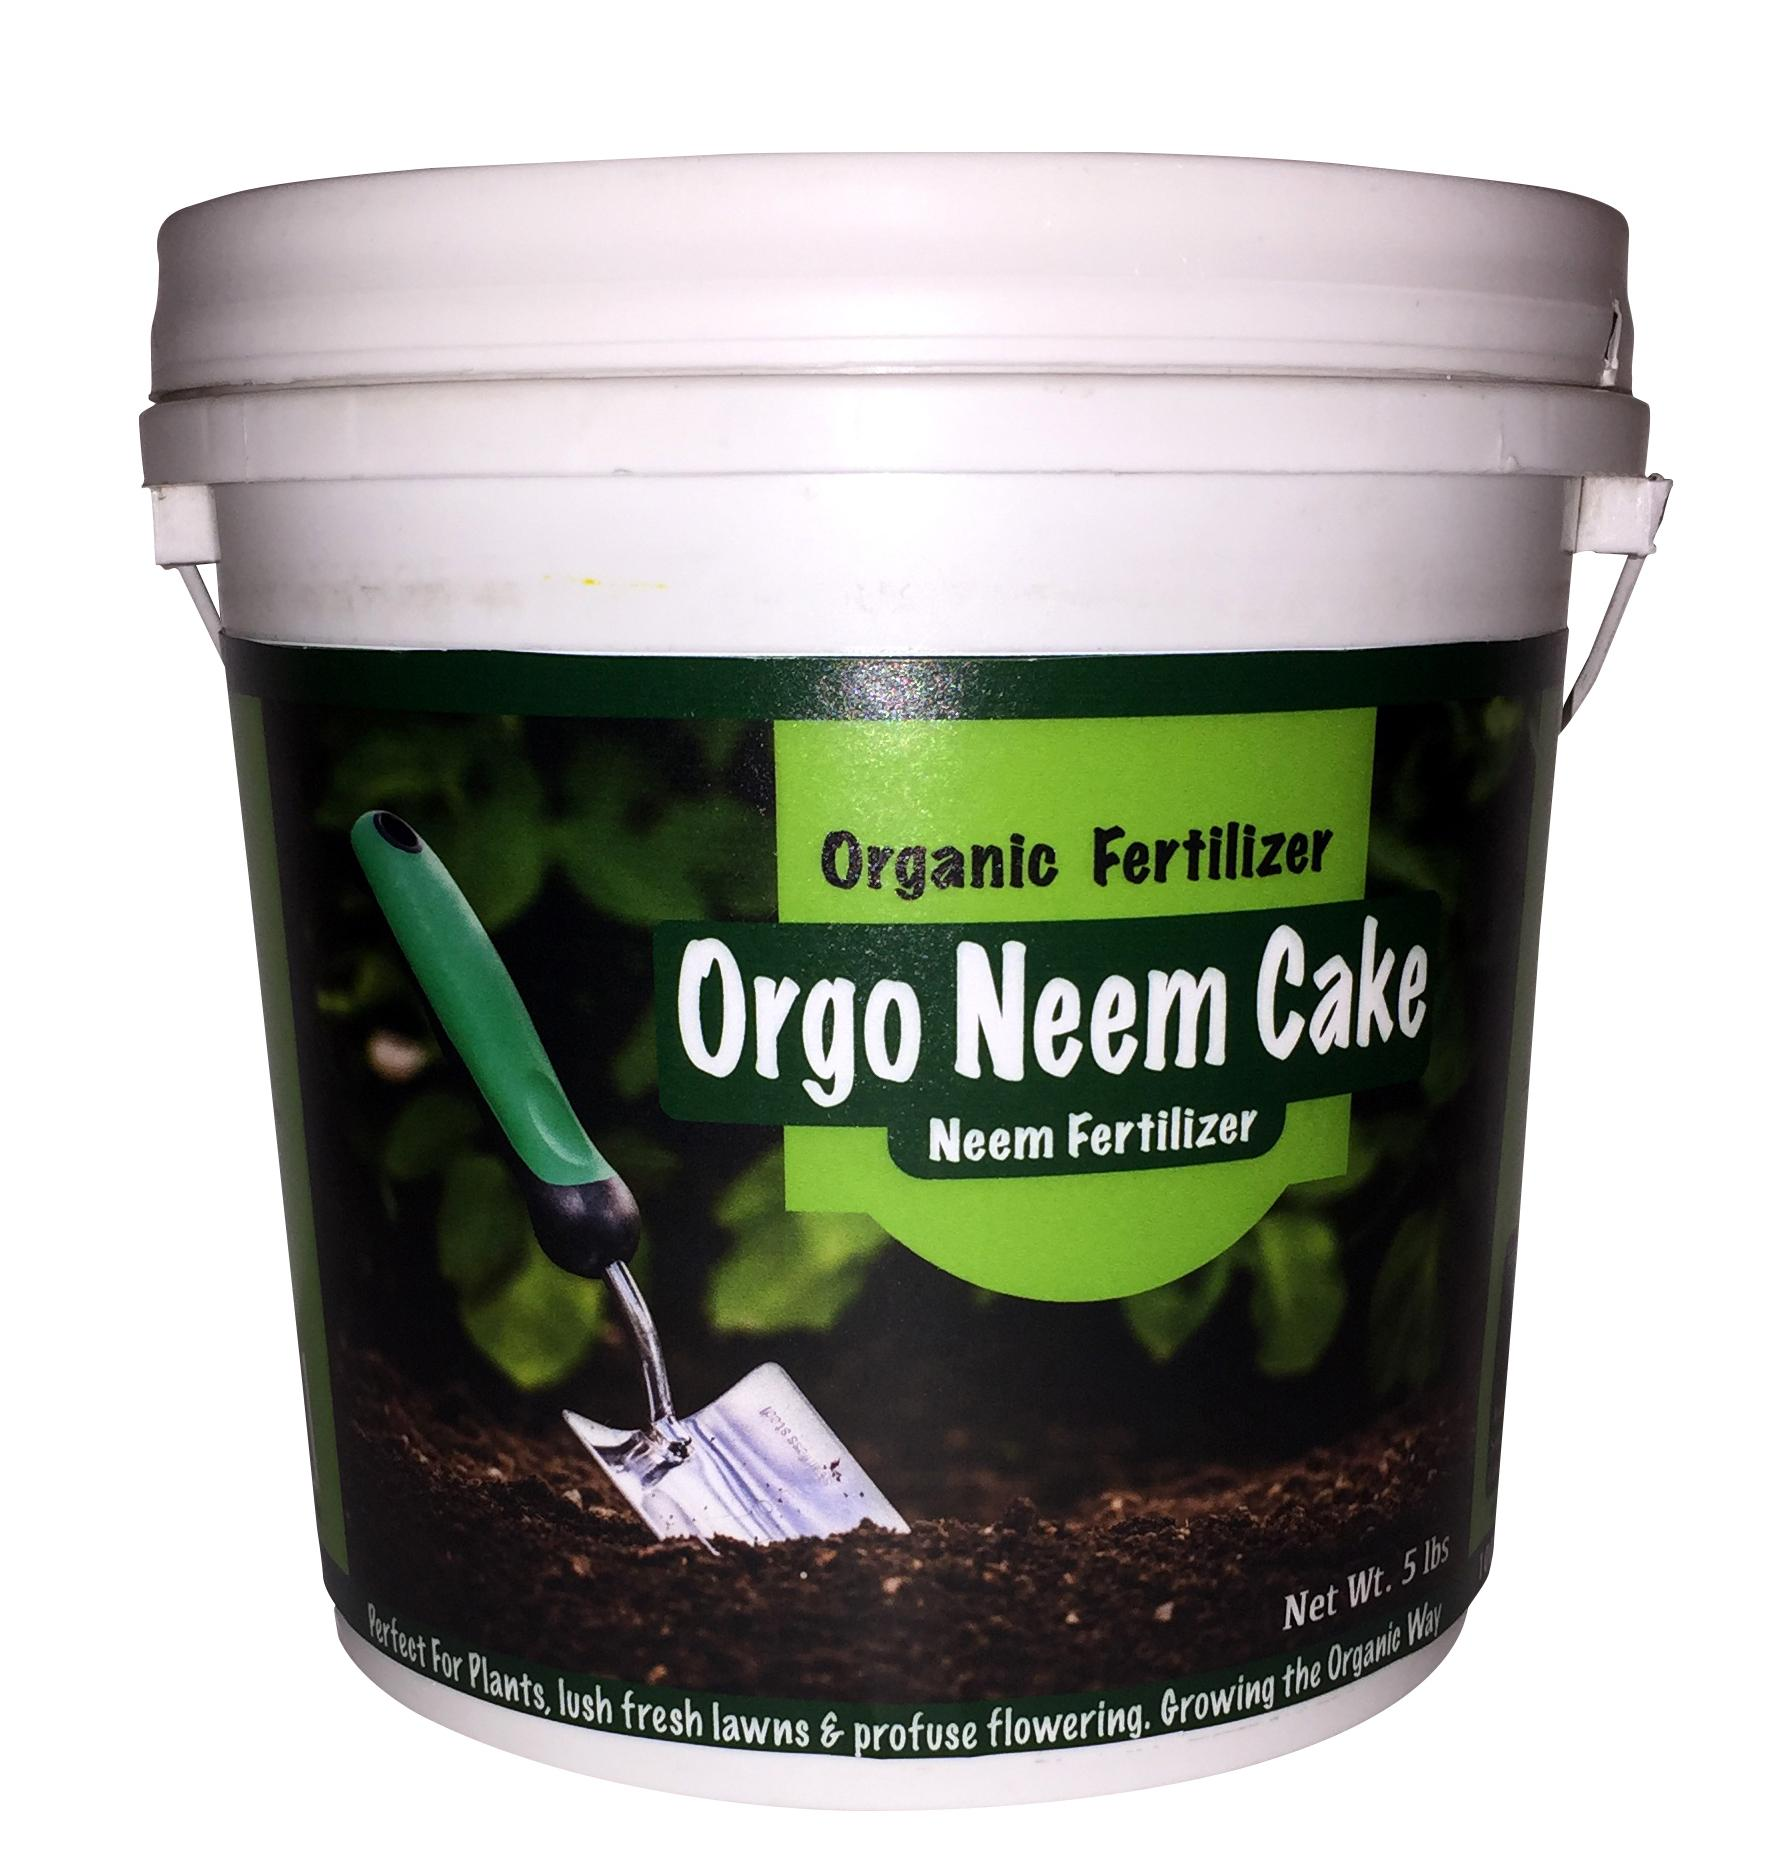 Neem cake fertilizer 100 organic garden Organic fertilizer for vegetable garden